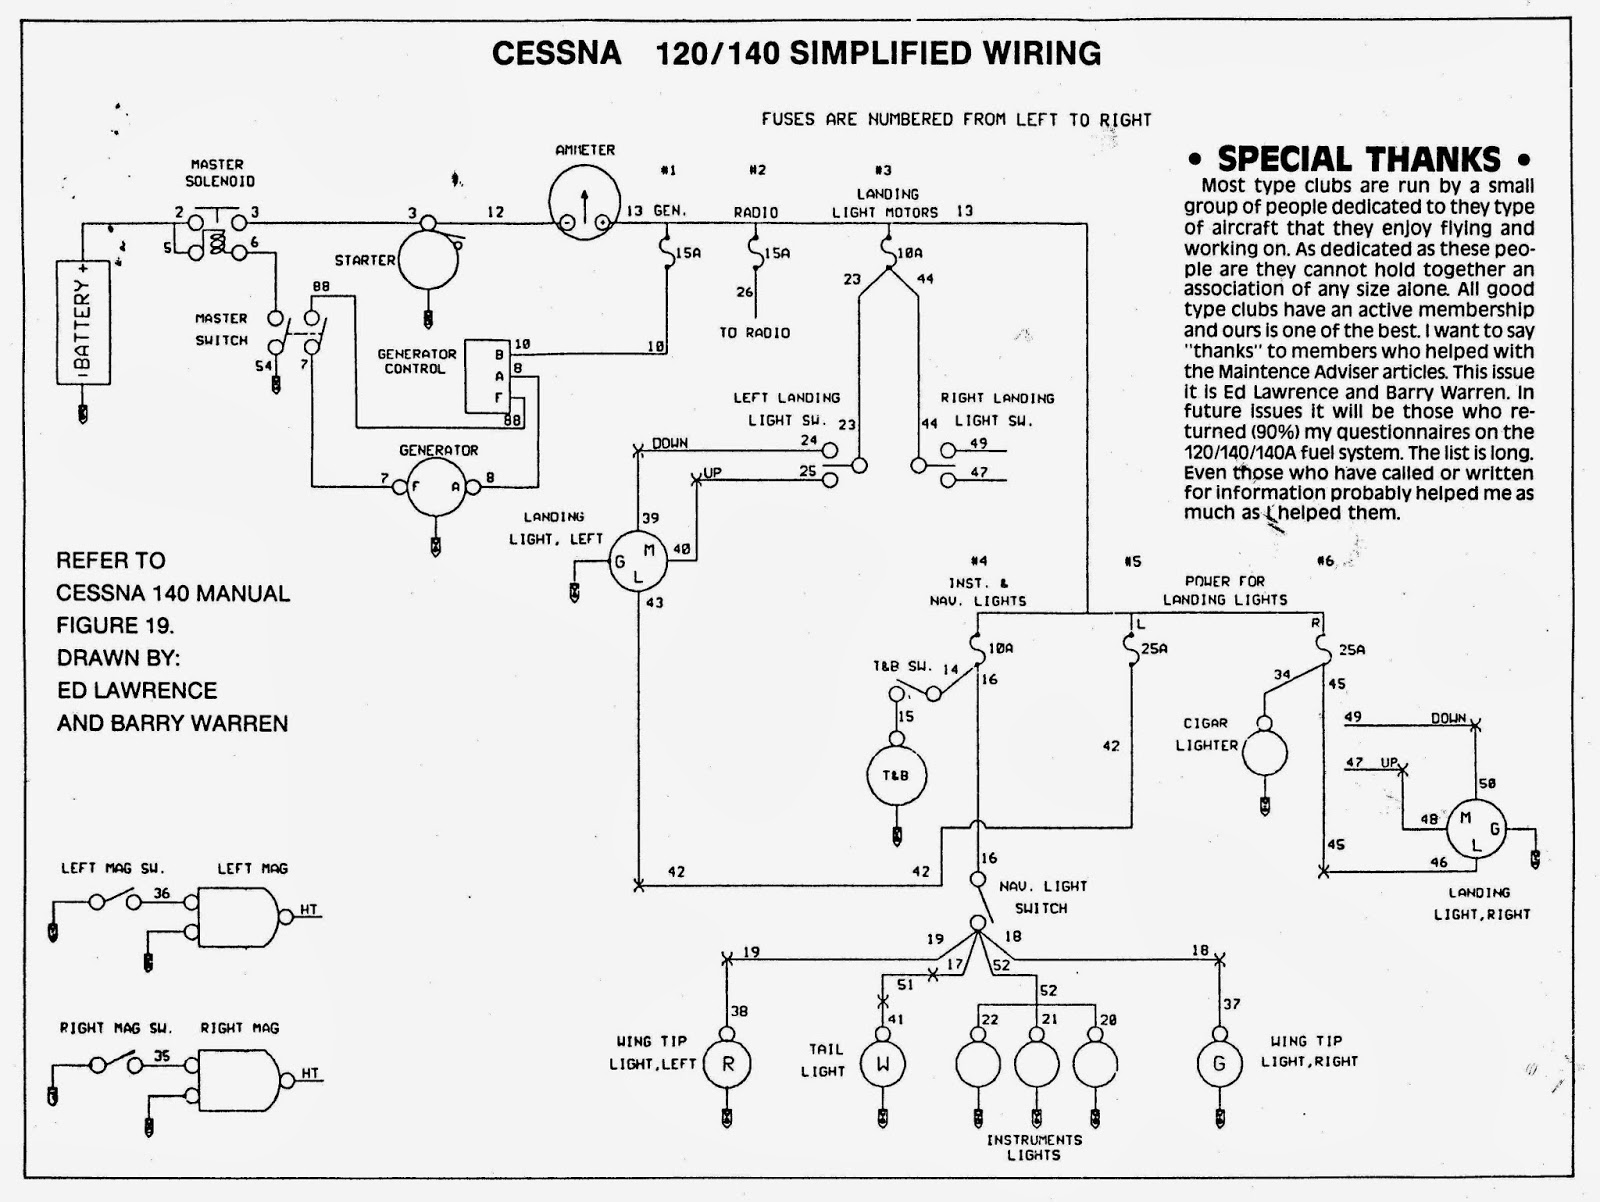 medium resolution of cessna 172 audio jacks wiring diagram wiring diagram cessna 172 cockpit layout wiring diagrams for aircraft